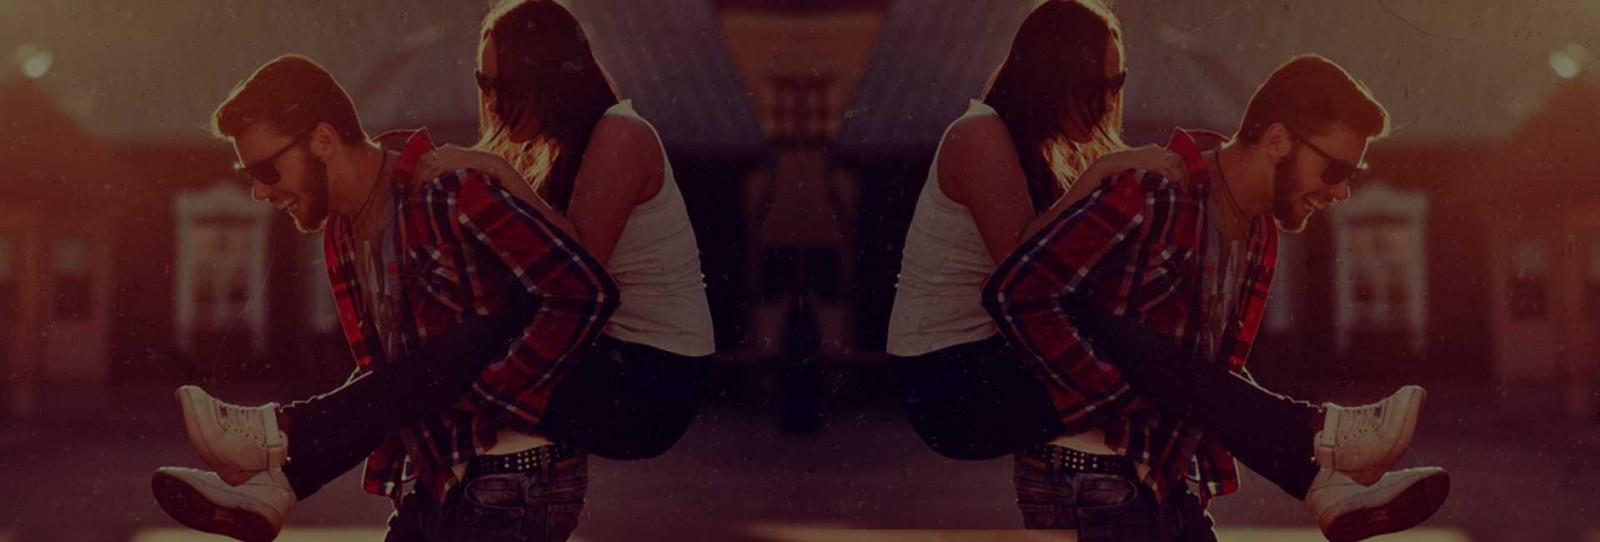 Hipster couple background